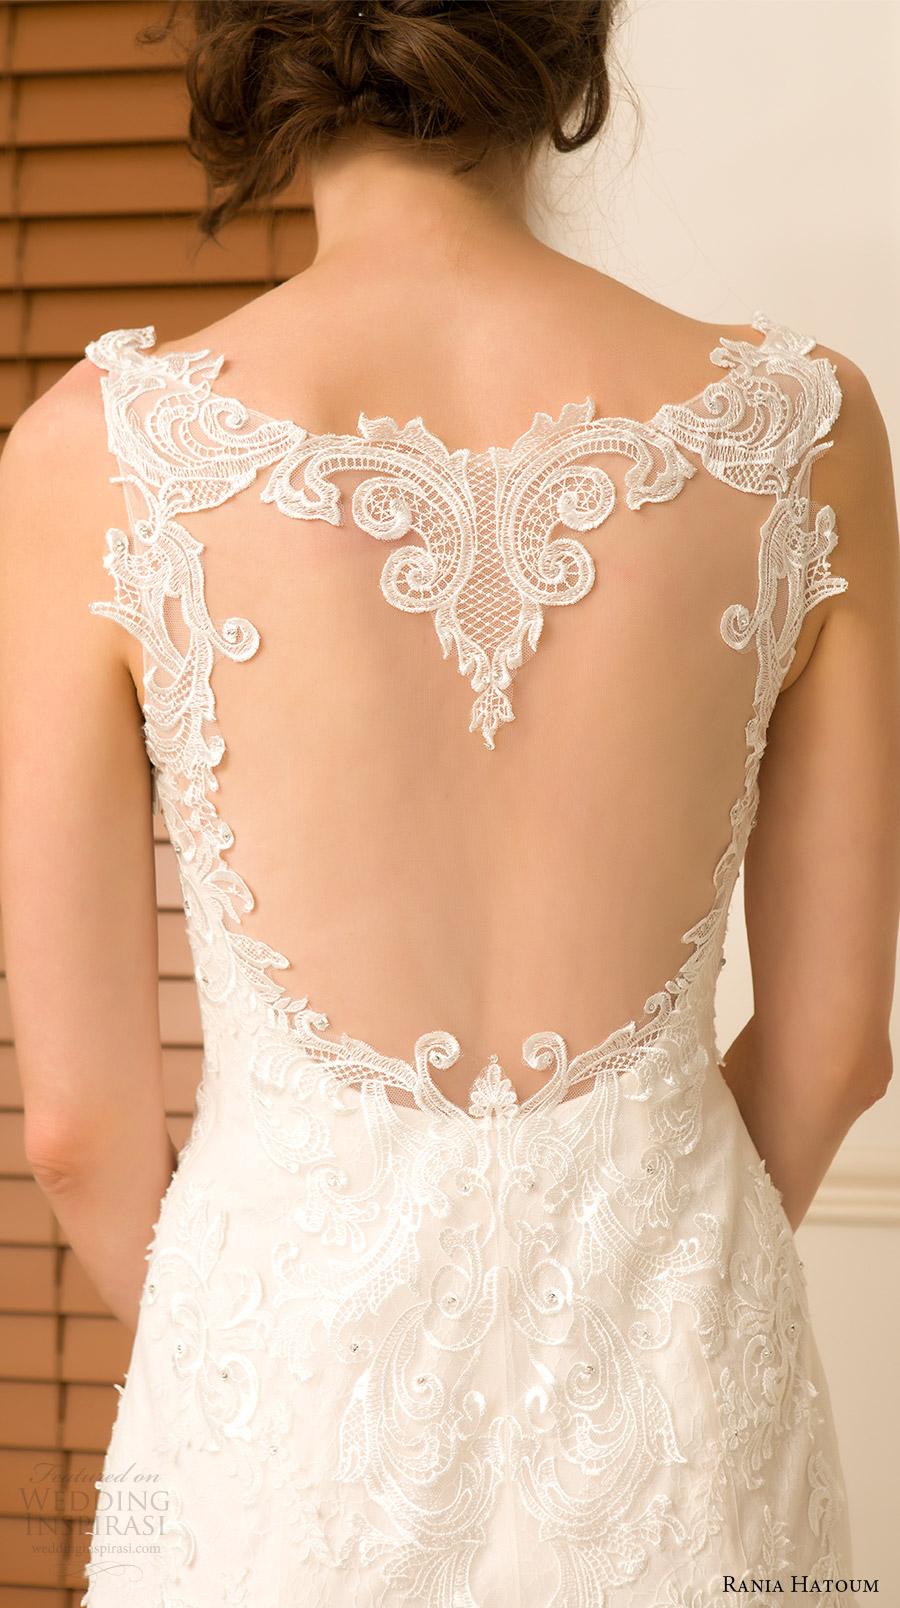 rania hatoum spring 2018 bridal sleeveless lace straps sweetheart lace bodice fit flare wedding dress (charlize) zbv sheer back train